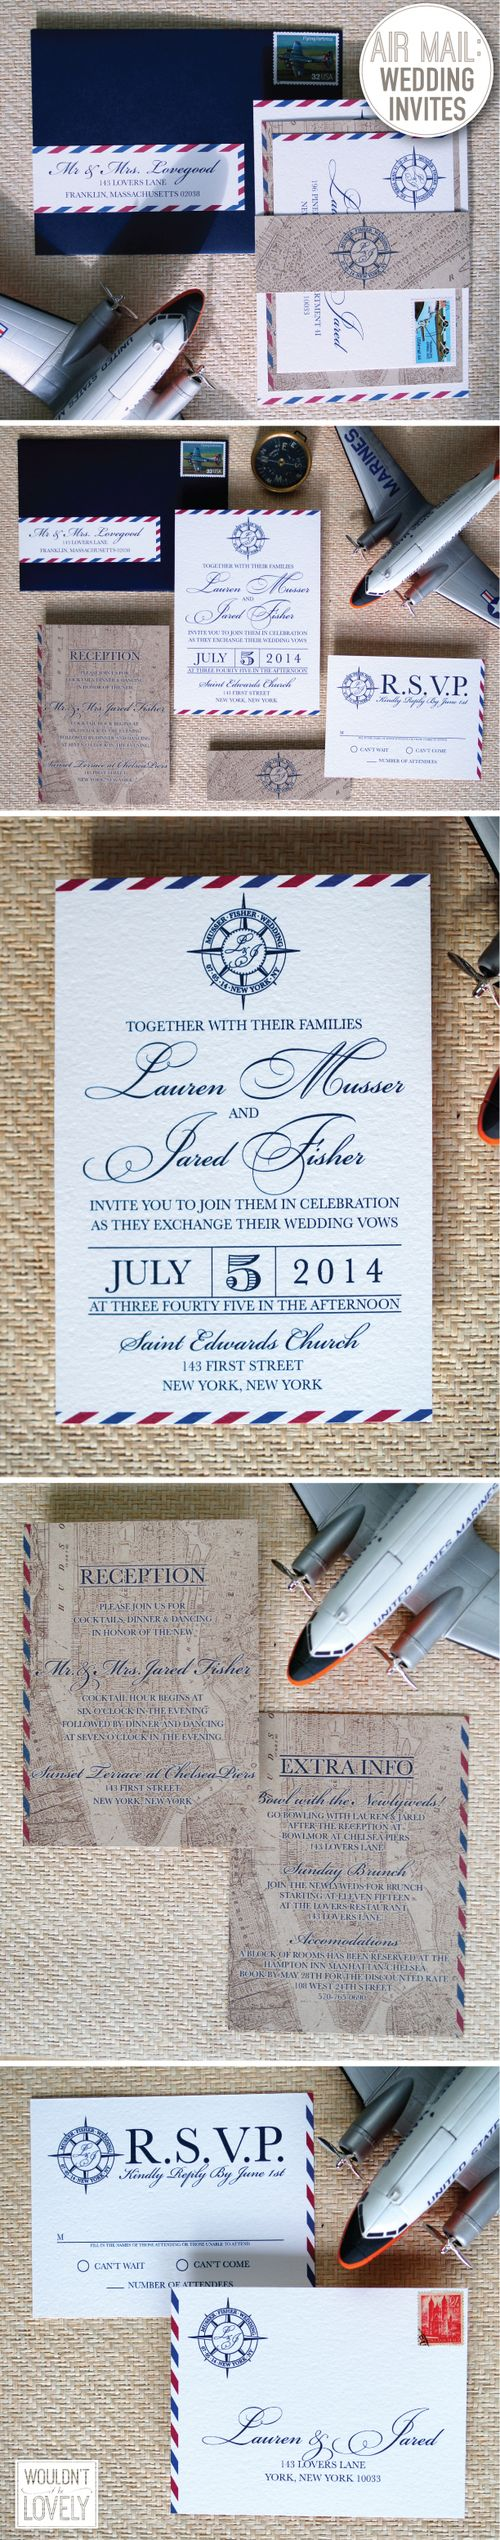 125 best wedding invitations images on pinterest weddings